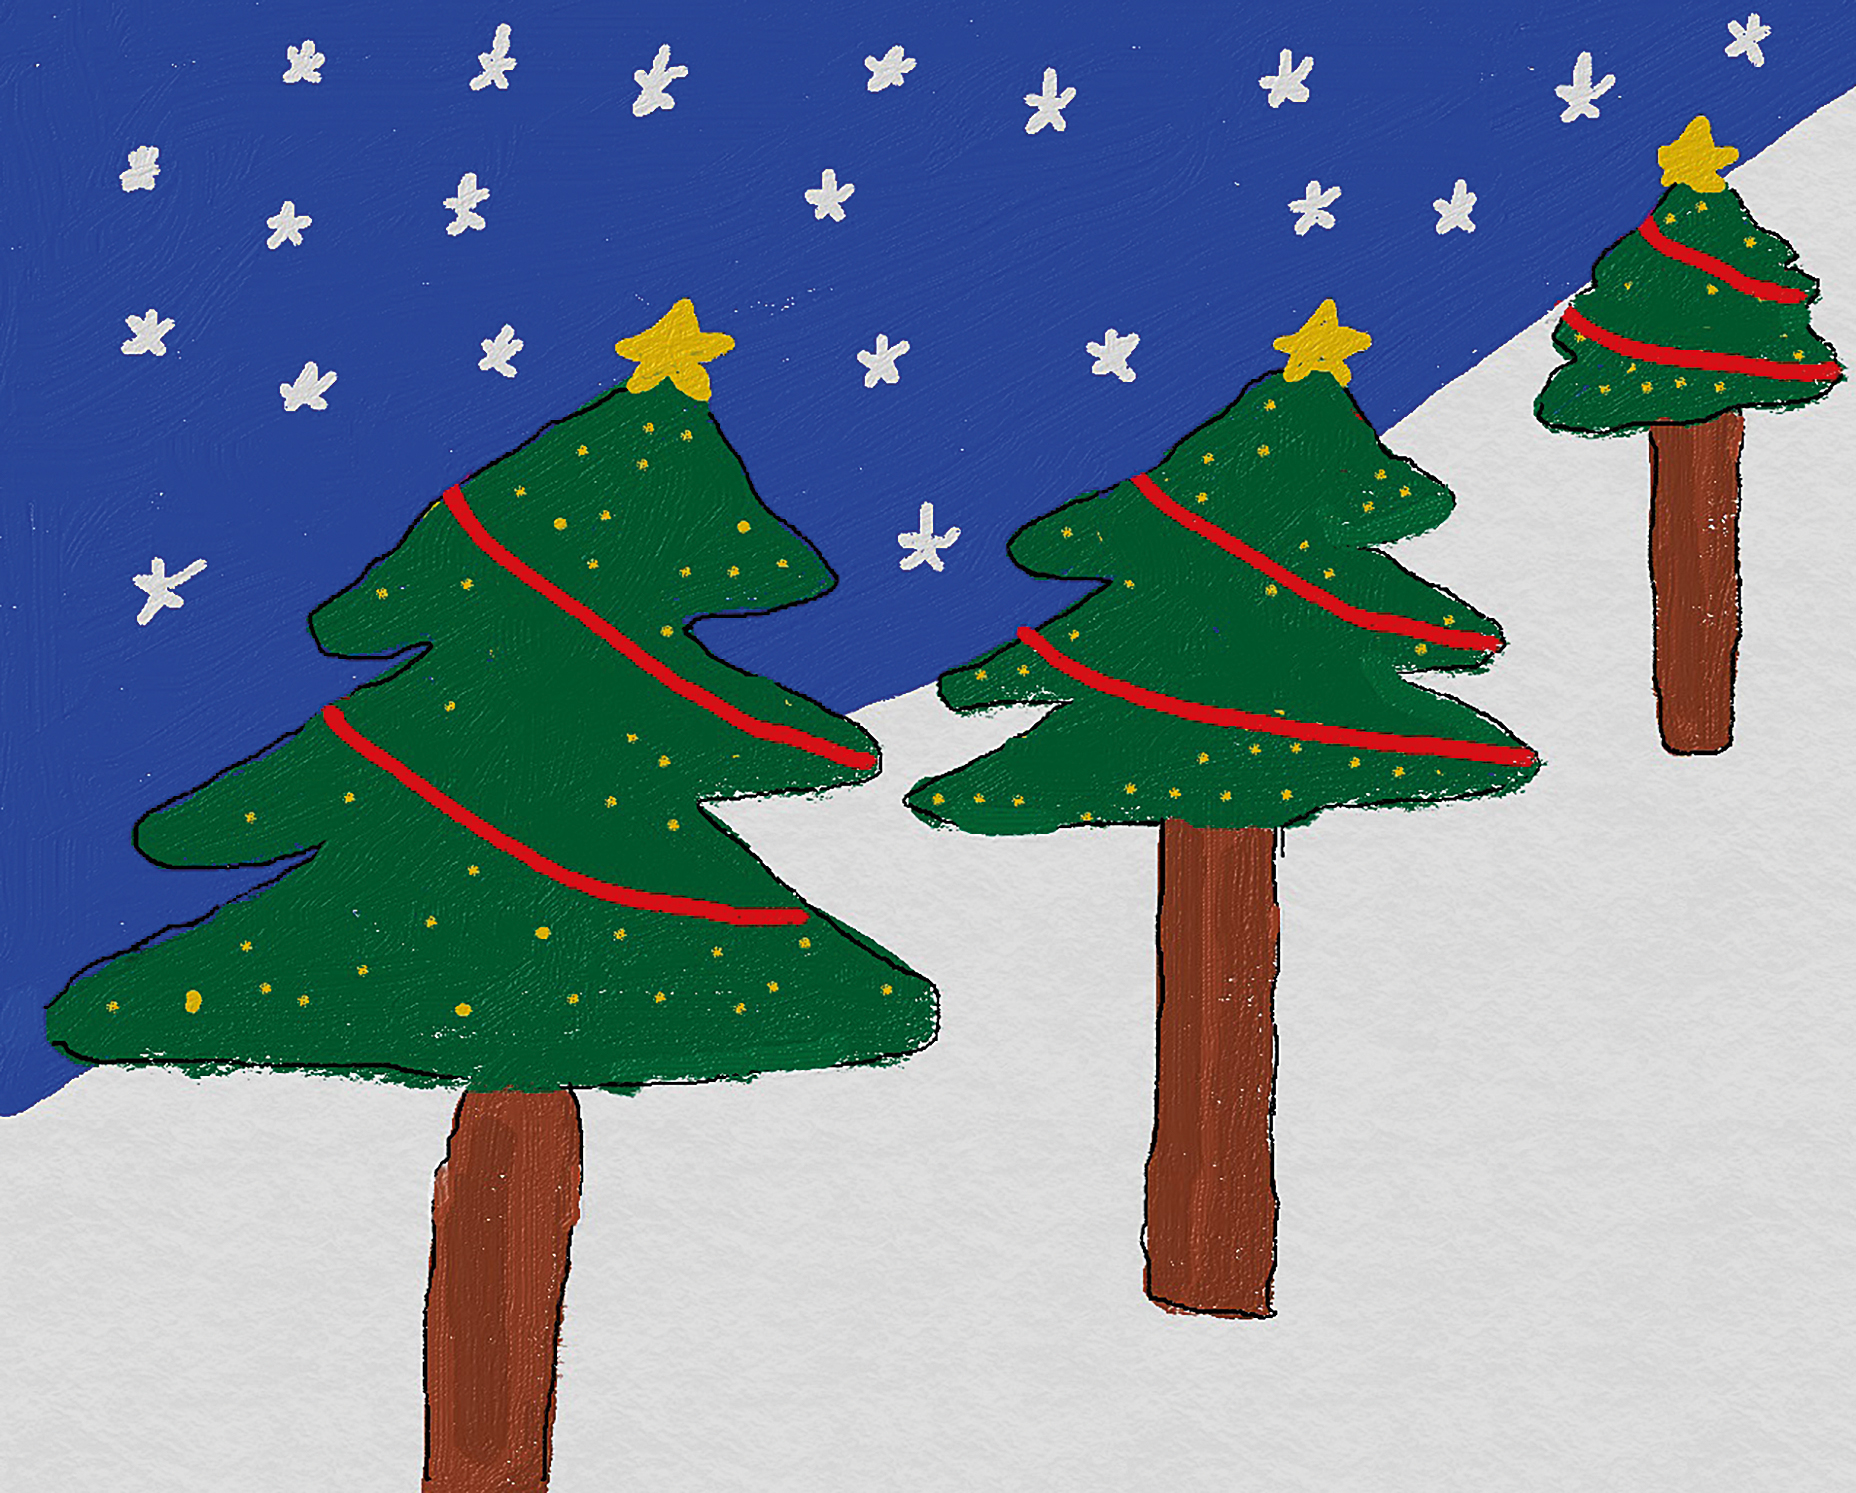 Three Christmas trees in perspective against a blue sky with stars